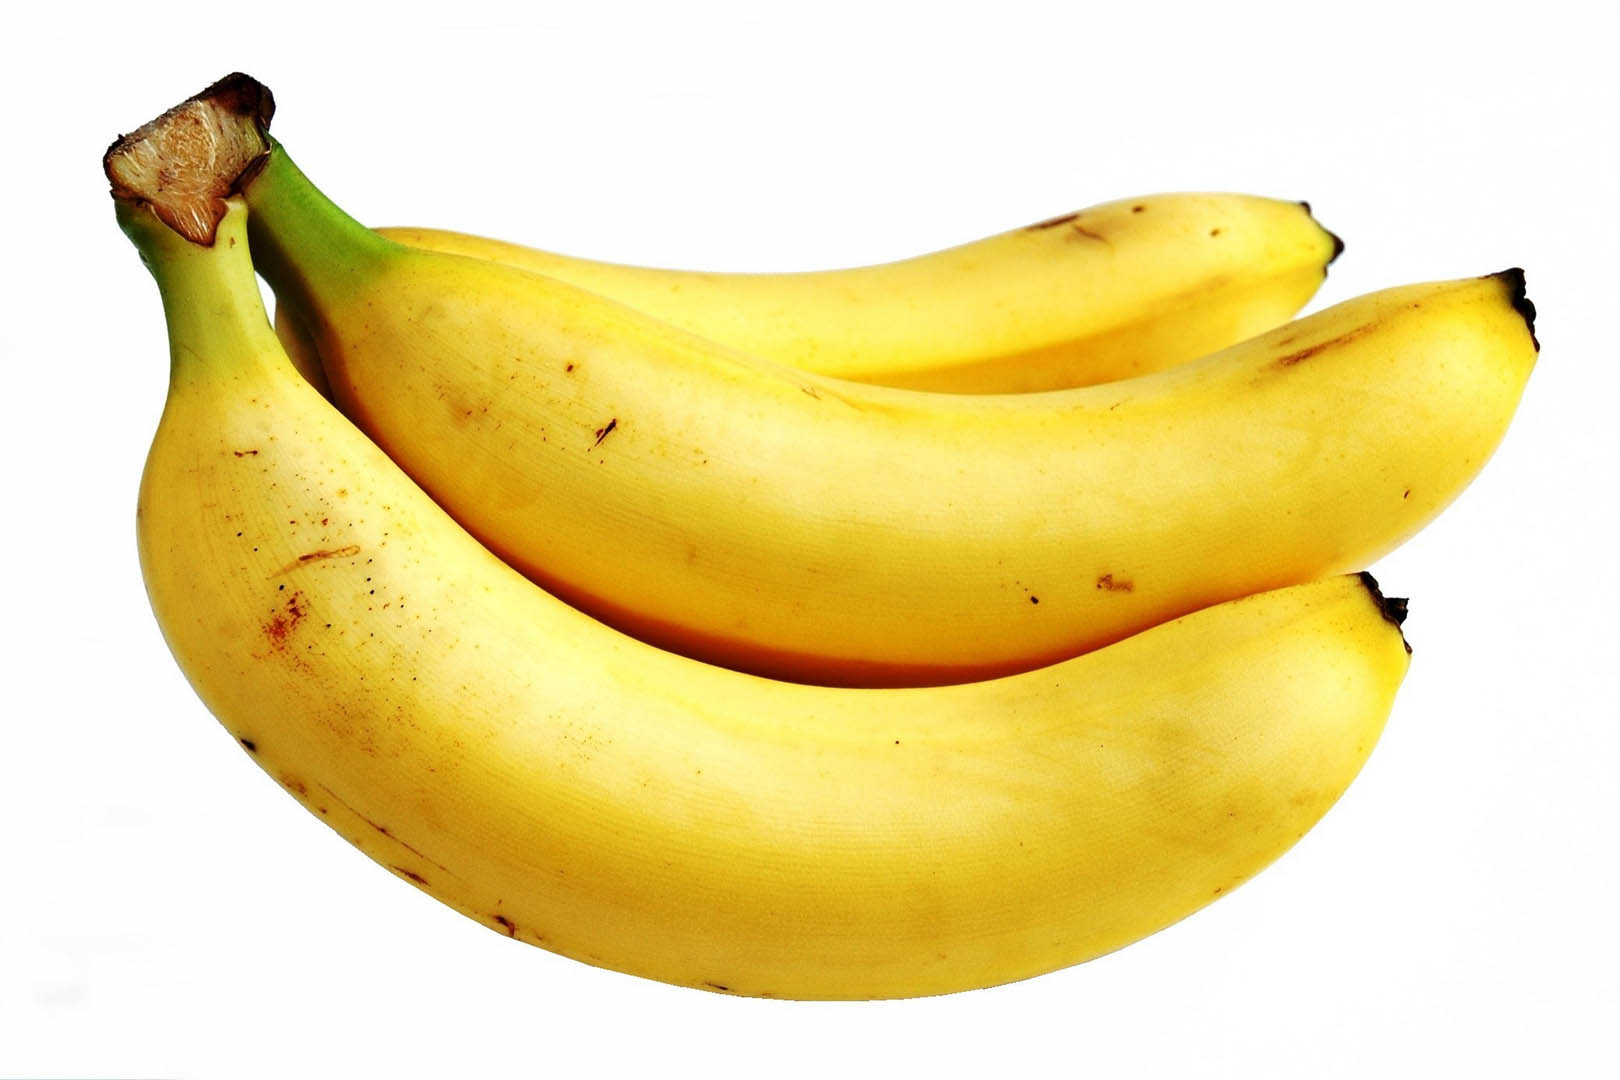 Image result for a bunch of bananas pictures